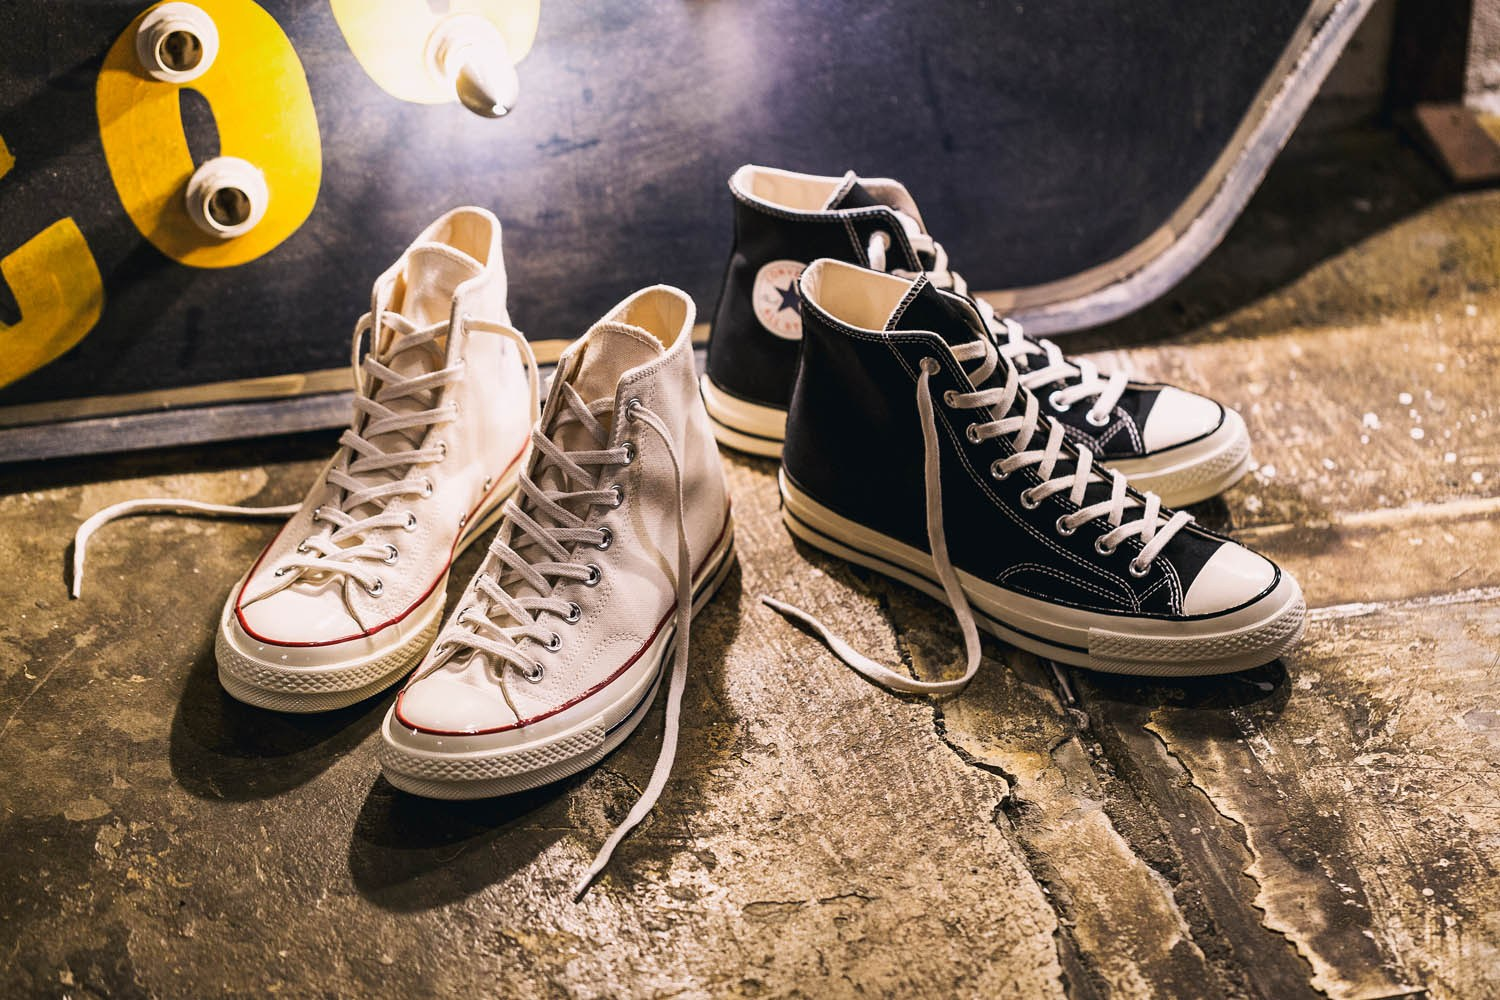 converse-shows-its-colors-with-its-latest-chuck-taylor-all-star-70s-release-9